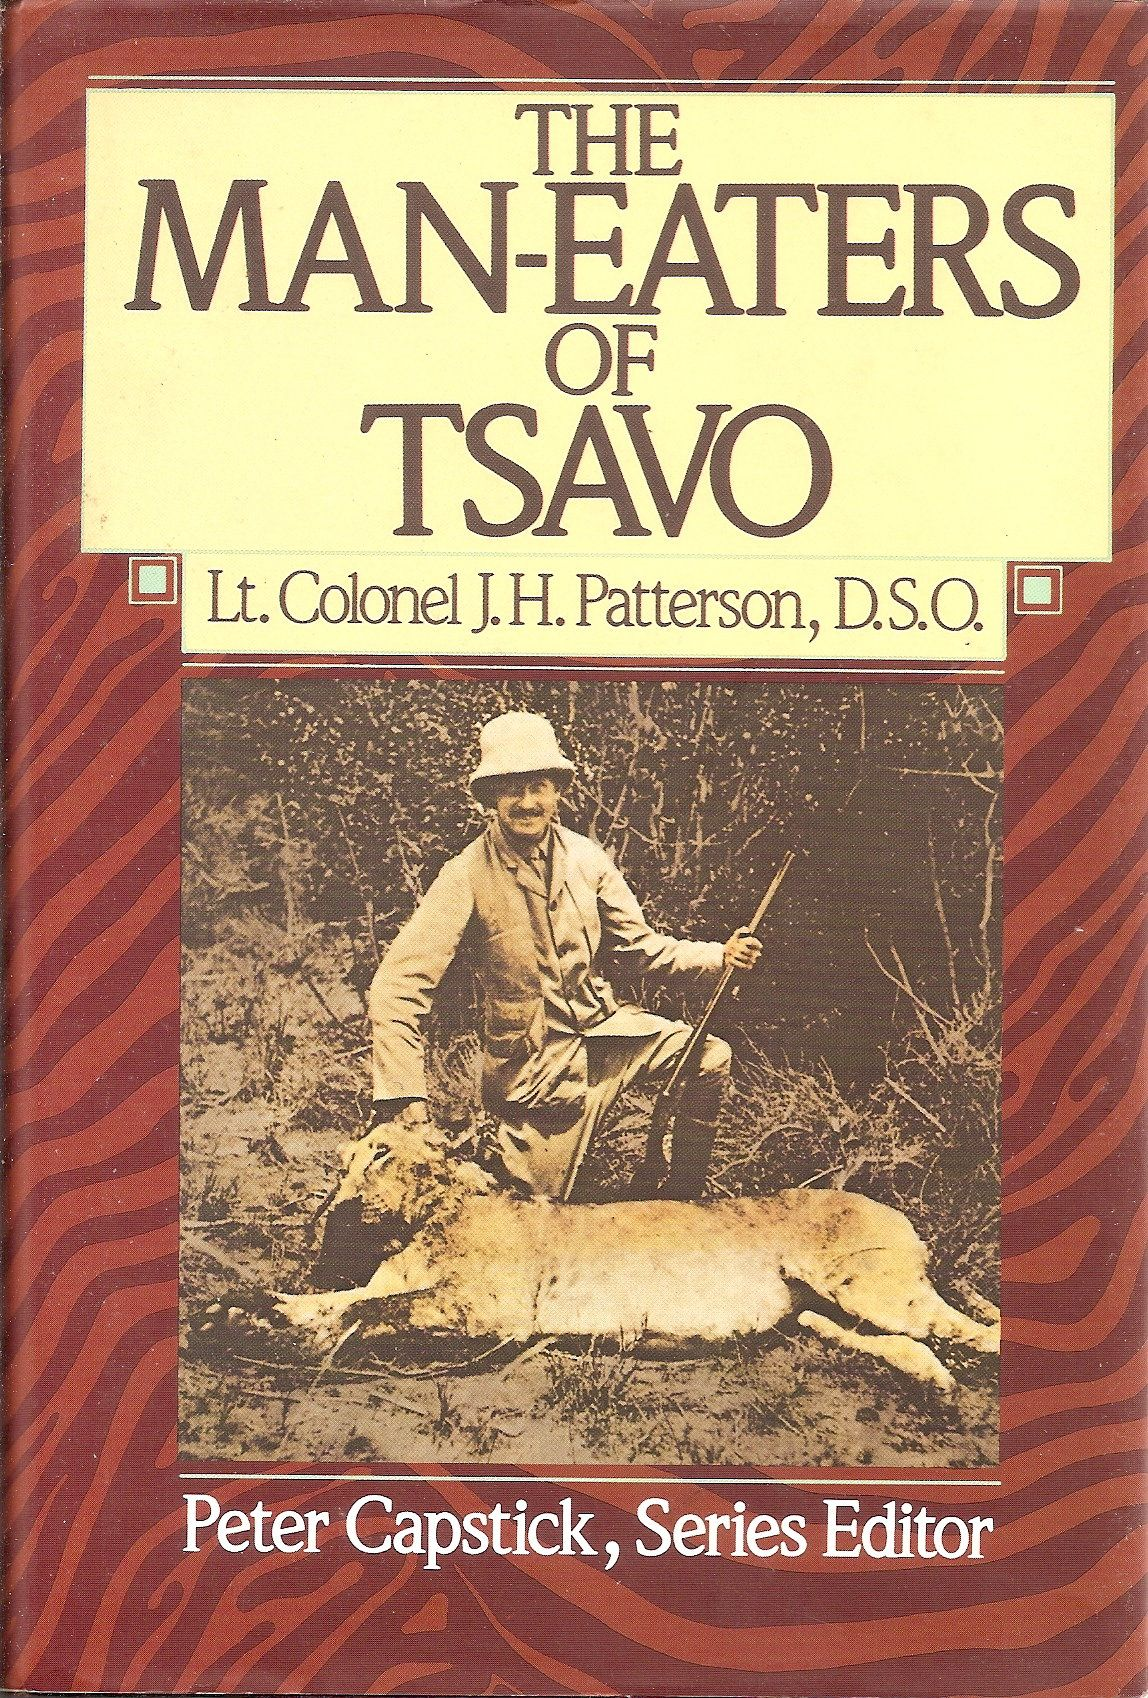 Man Eaters Of Tsavo Lt Colonel J H Patterson D S O Series Editor Peter Capstick Books Man Eater The Man